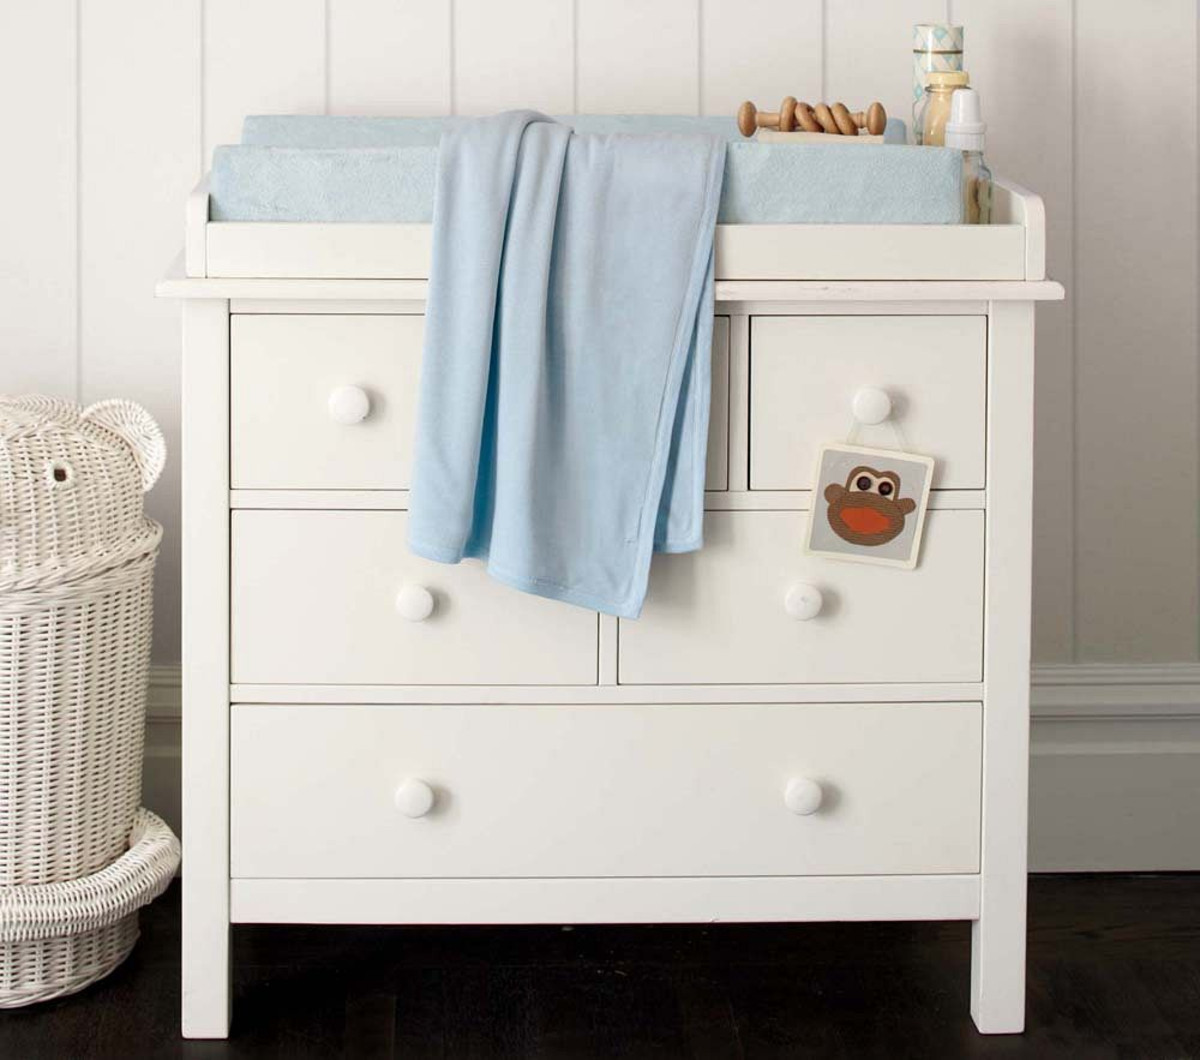 Image of: Nice Changing Table Topper for Dresser